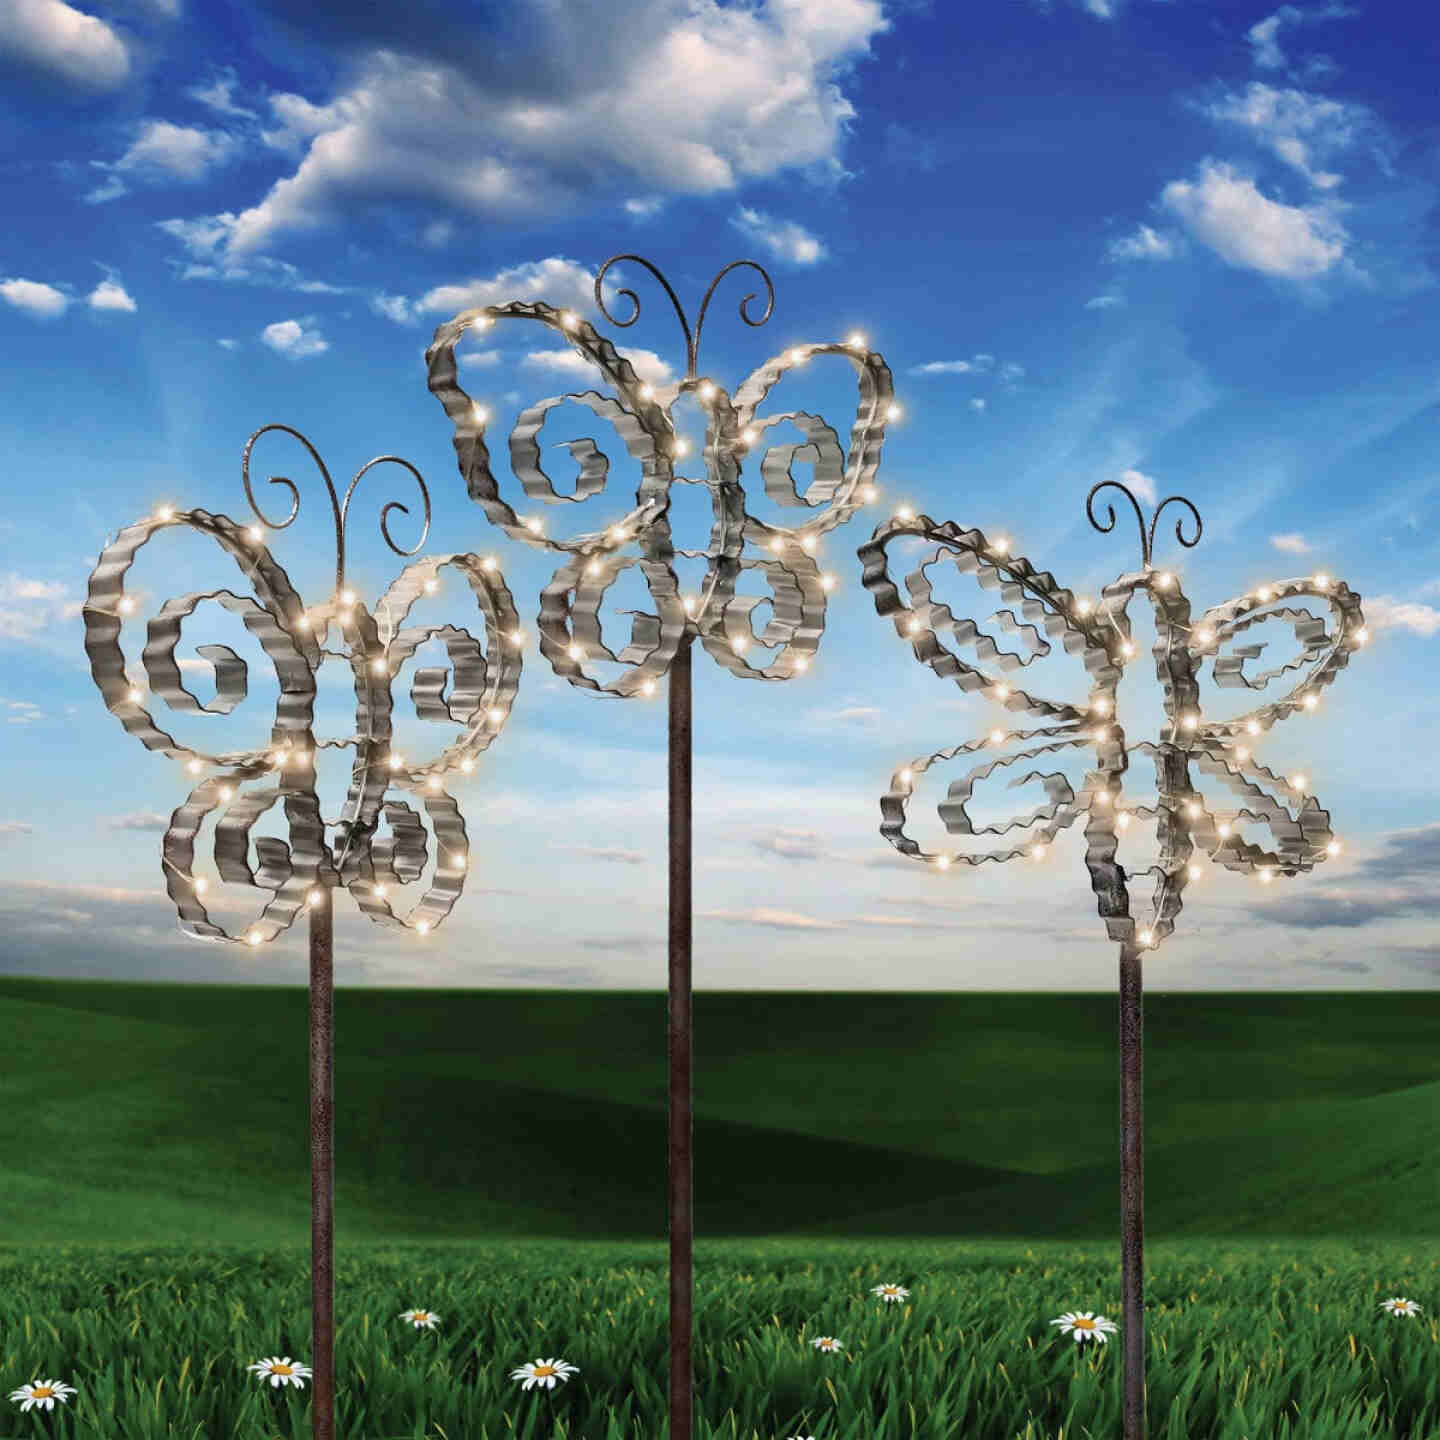 Alpine Metal 33 In. H. Insect Solar Stake Light Image 2